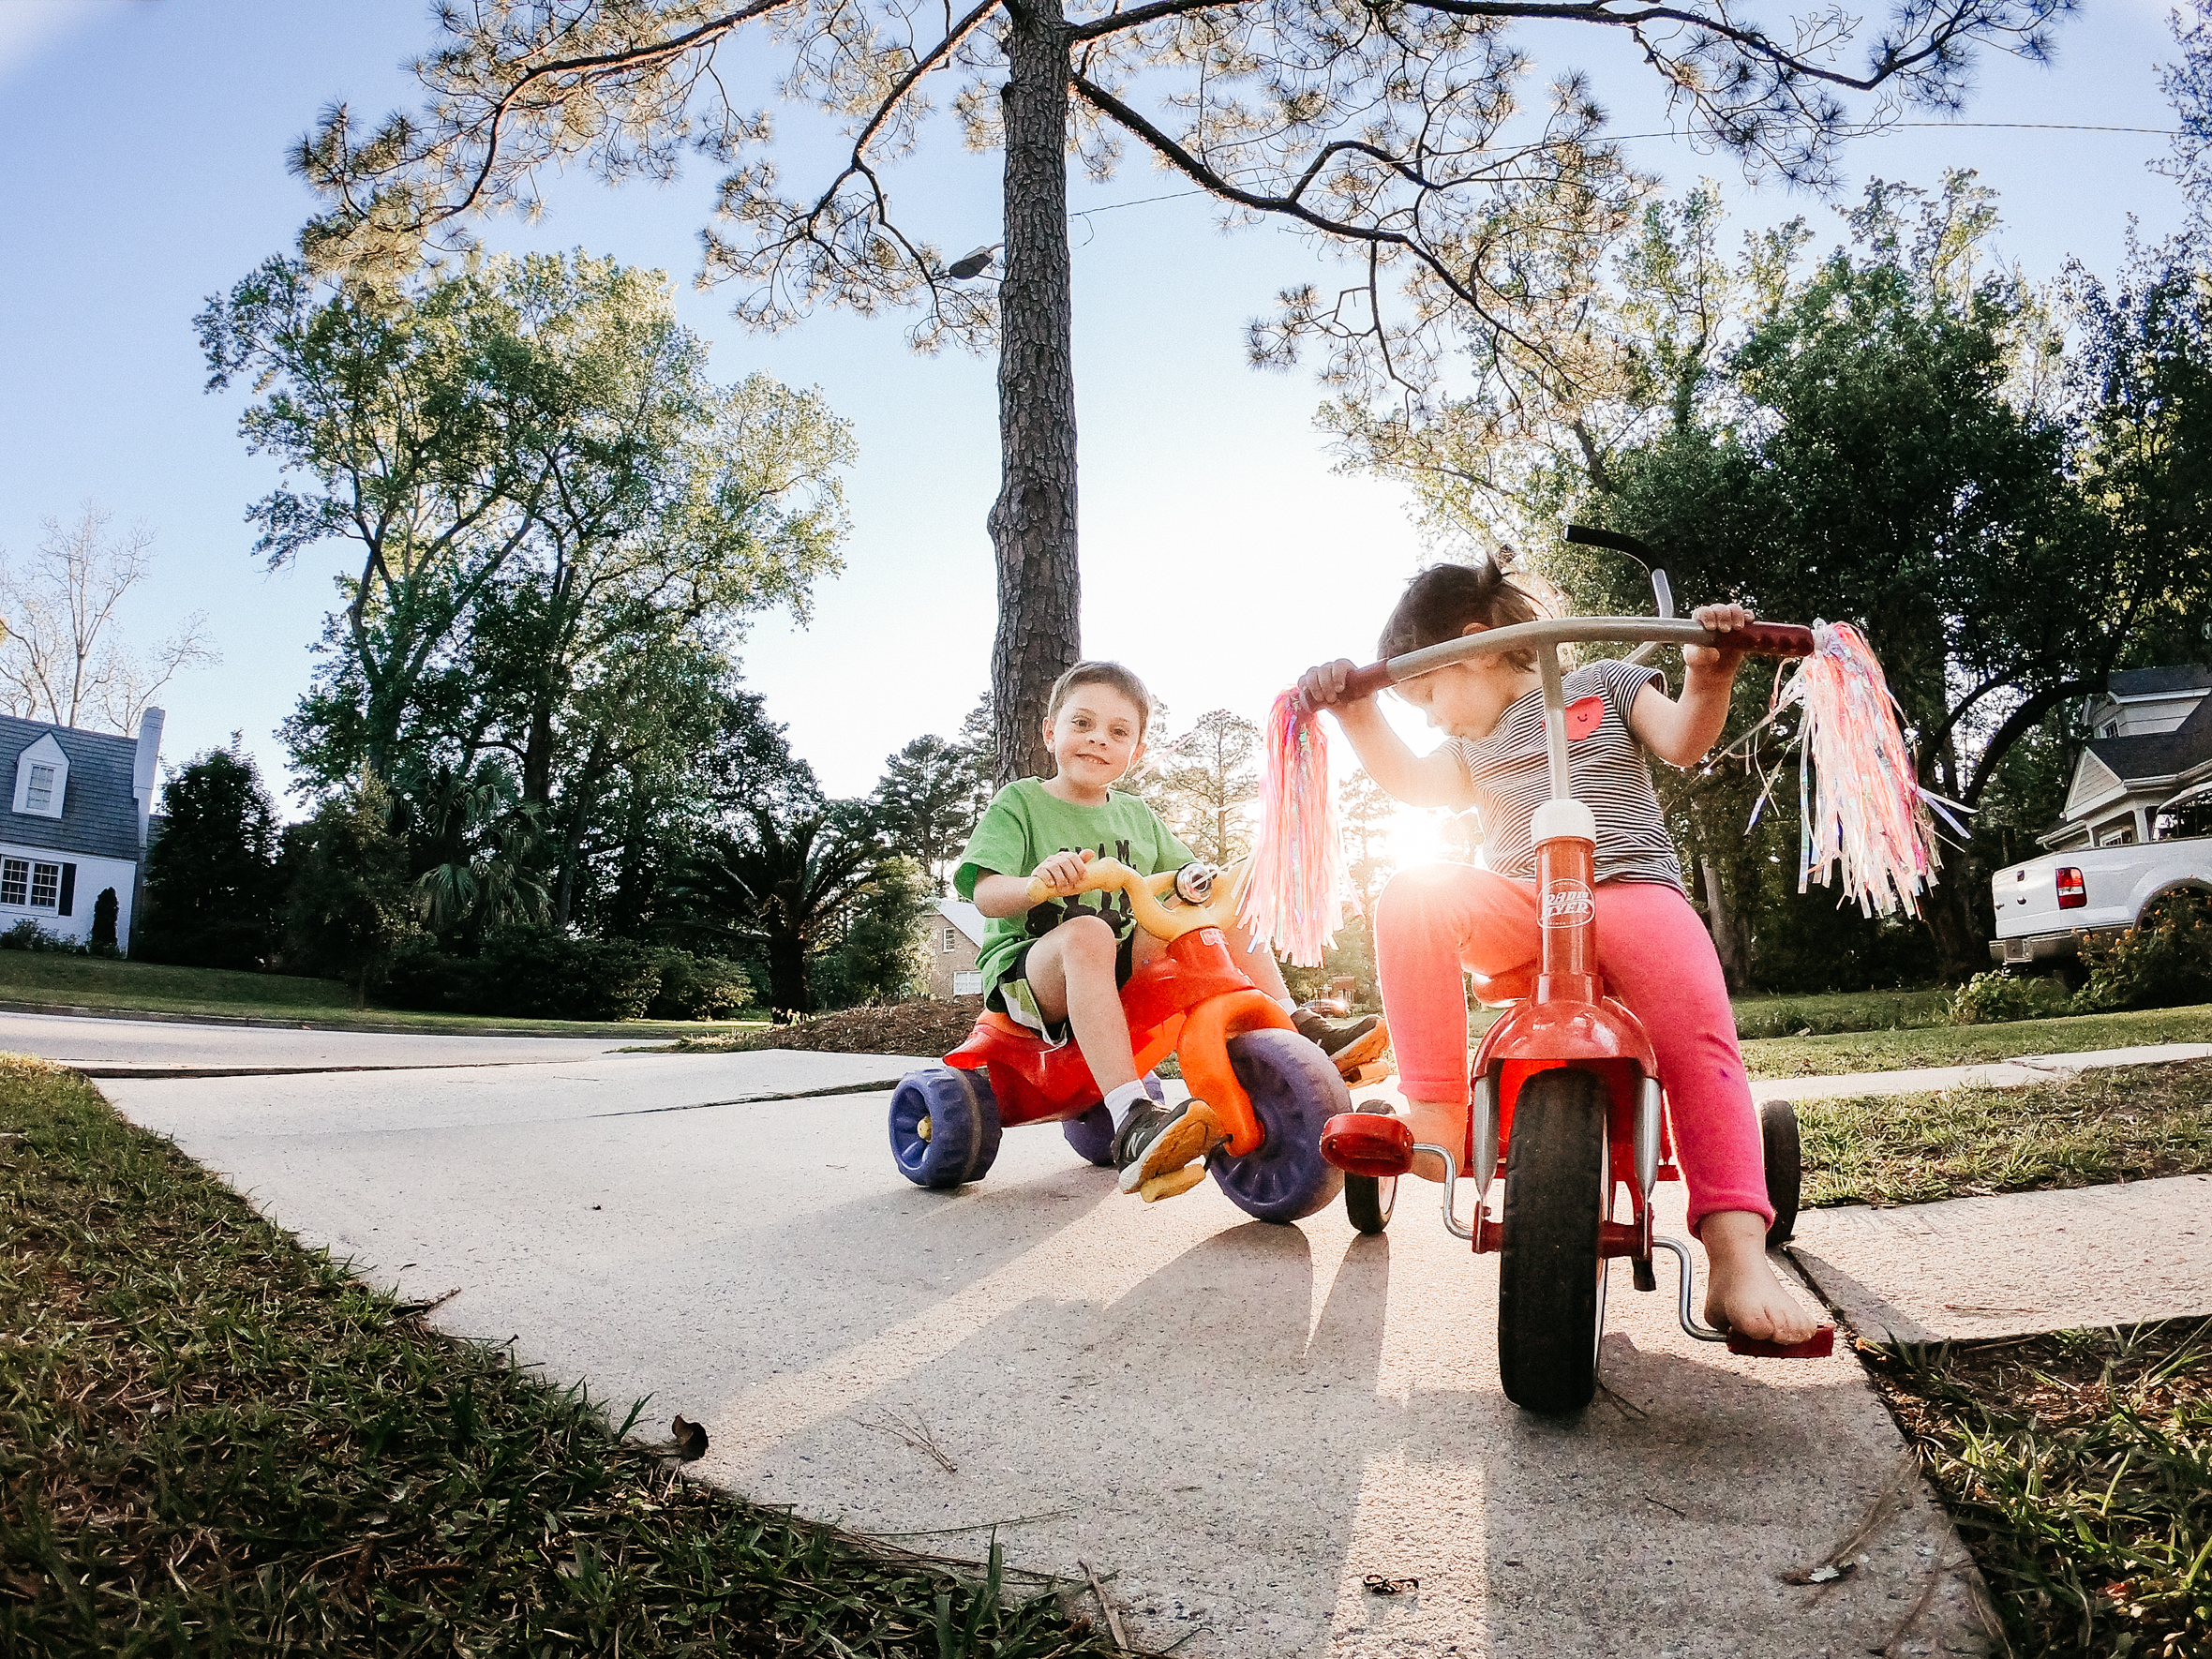 Go Pro, childhood pictures, summer childhood, kids riding bikes, lifestyle summer kid pictures